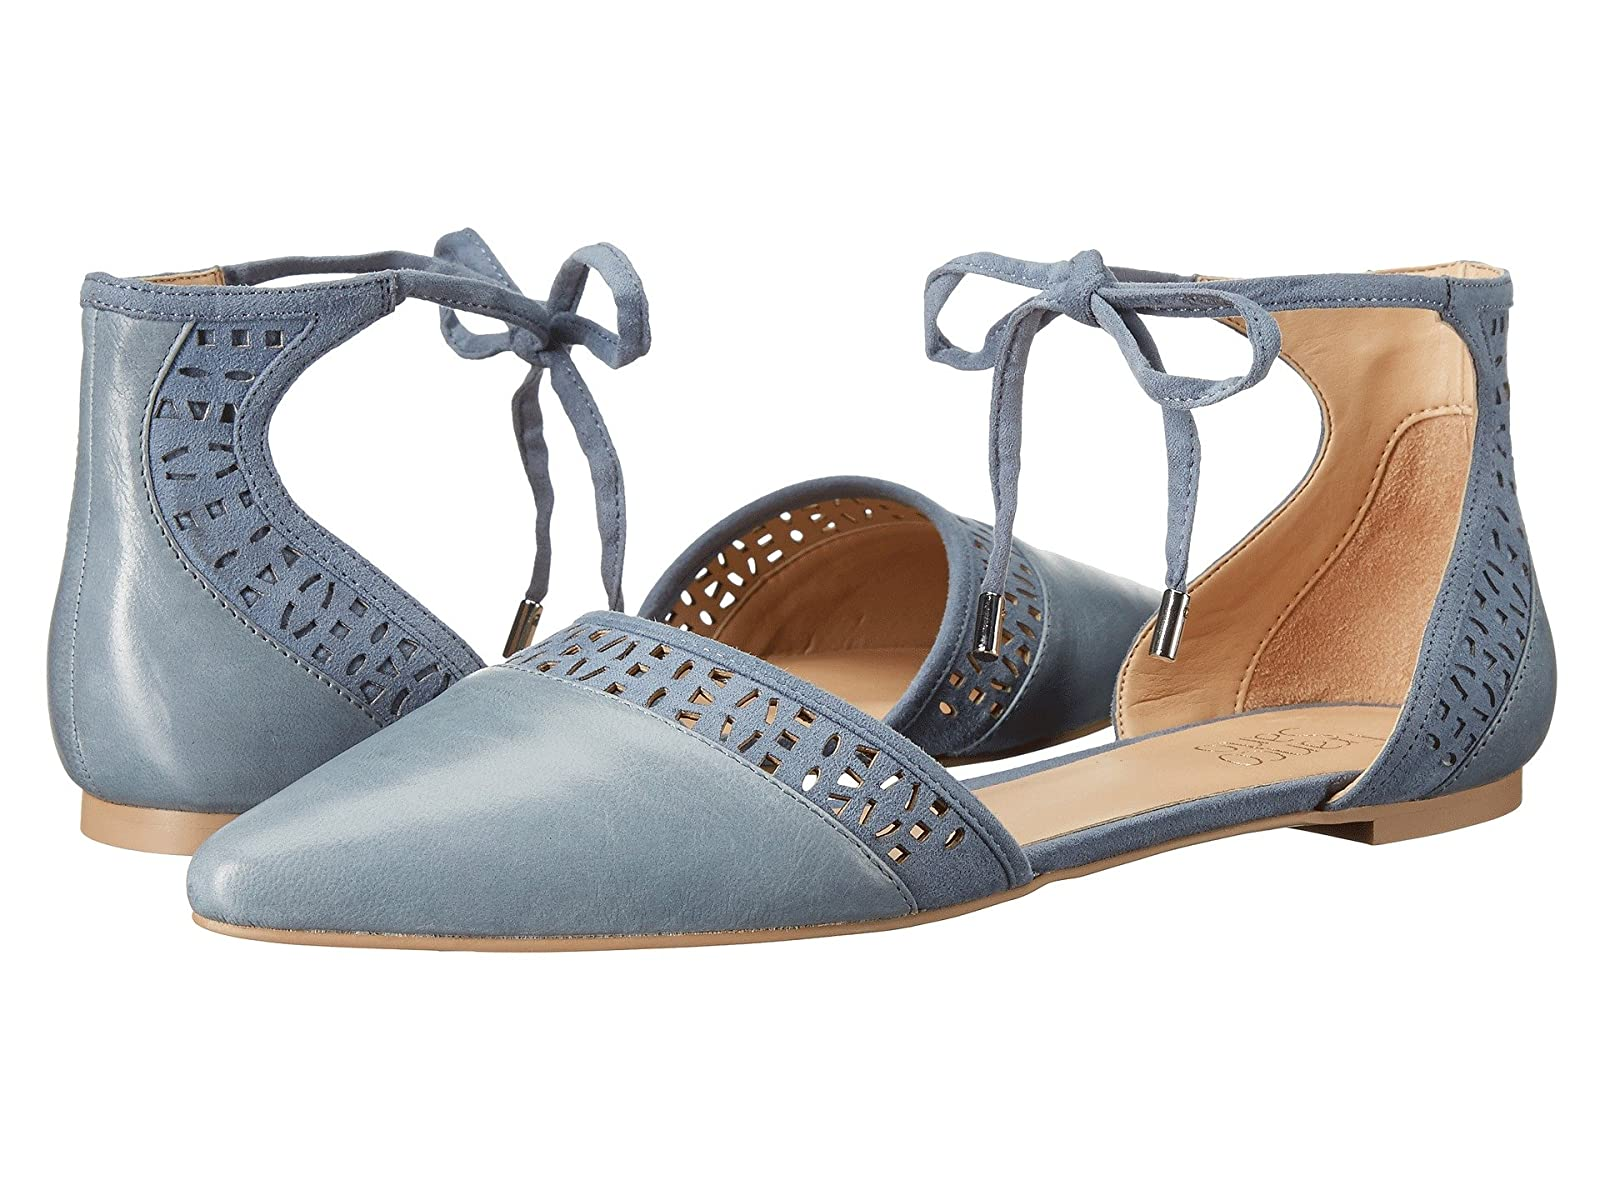 Franco Sarto ShirleyCheap and distinctive eye-catching shoes